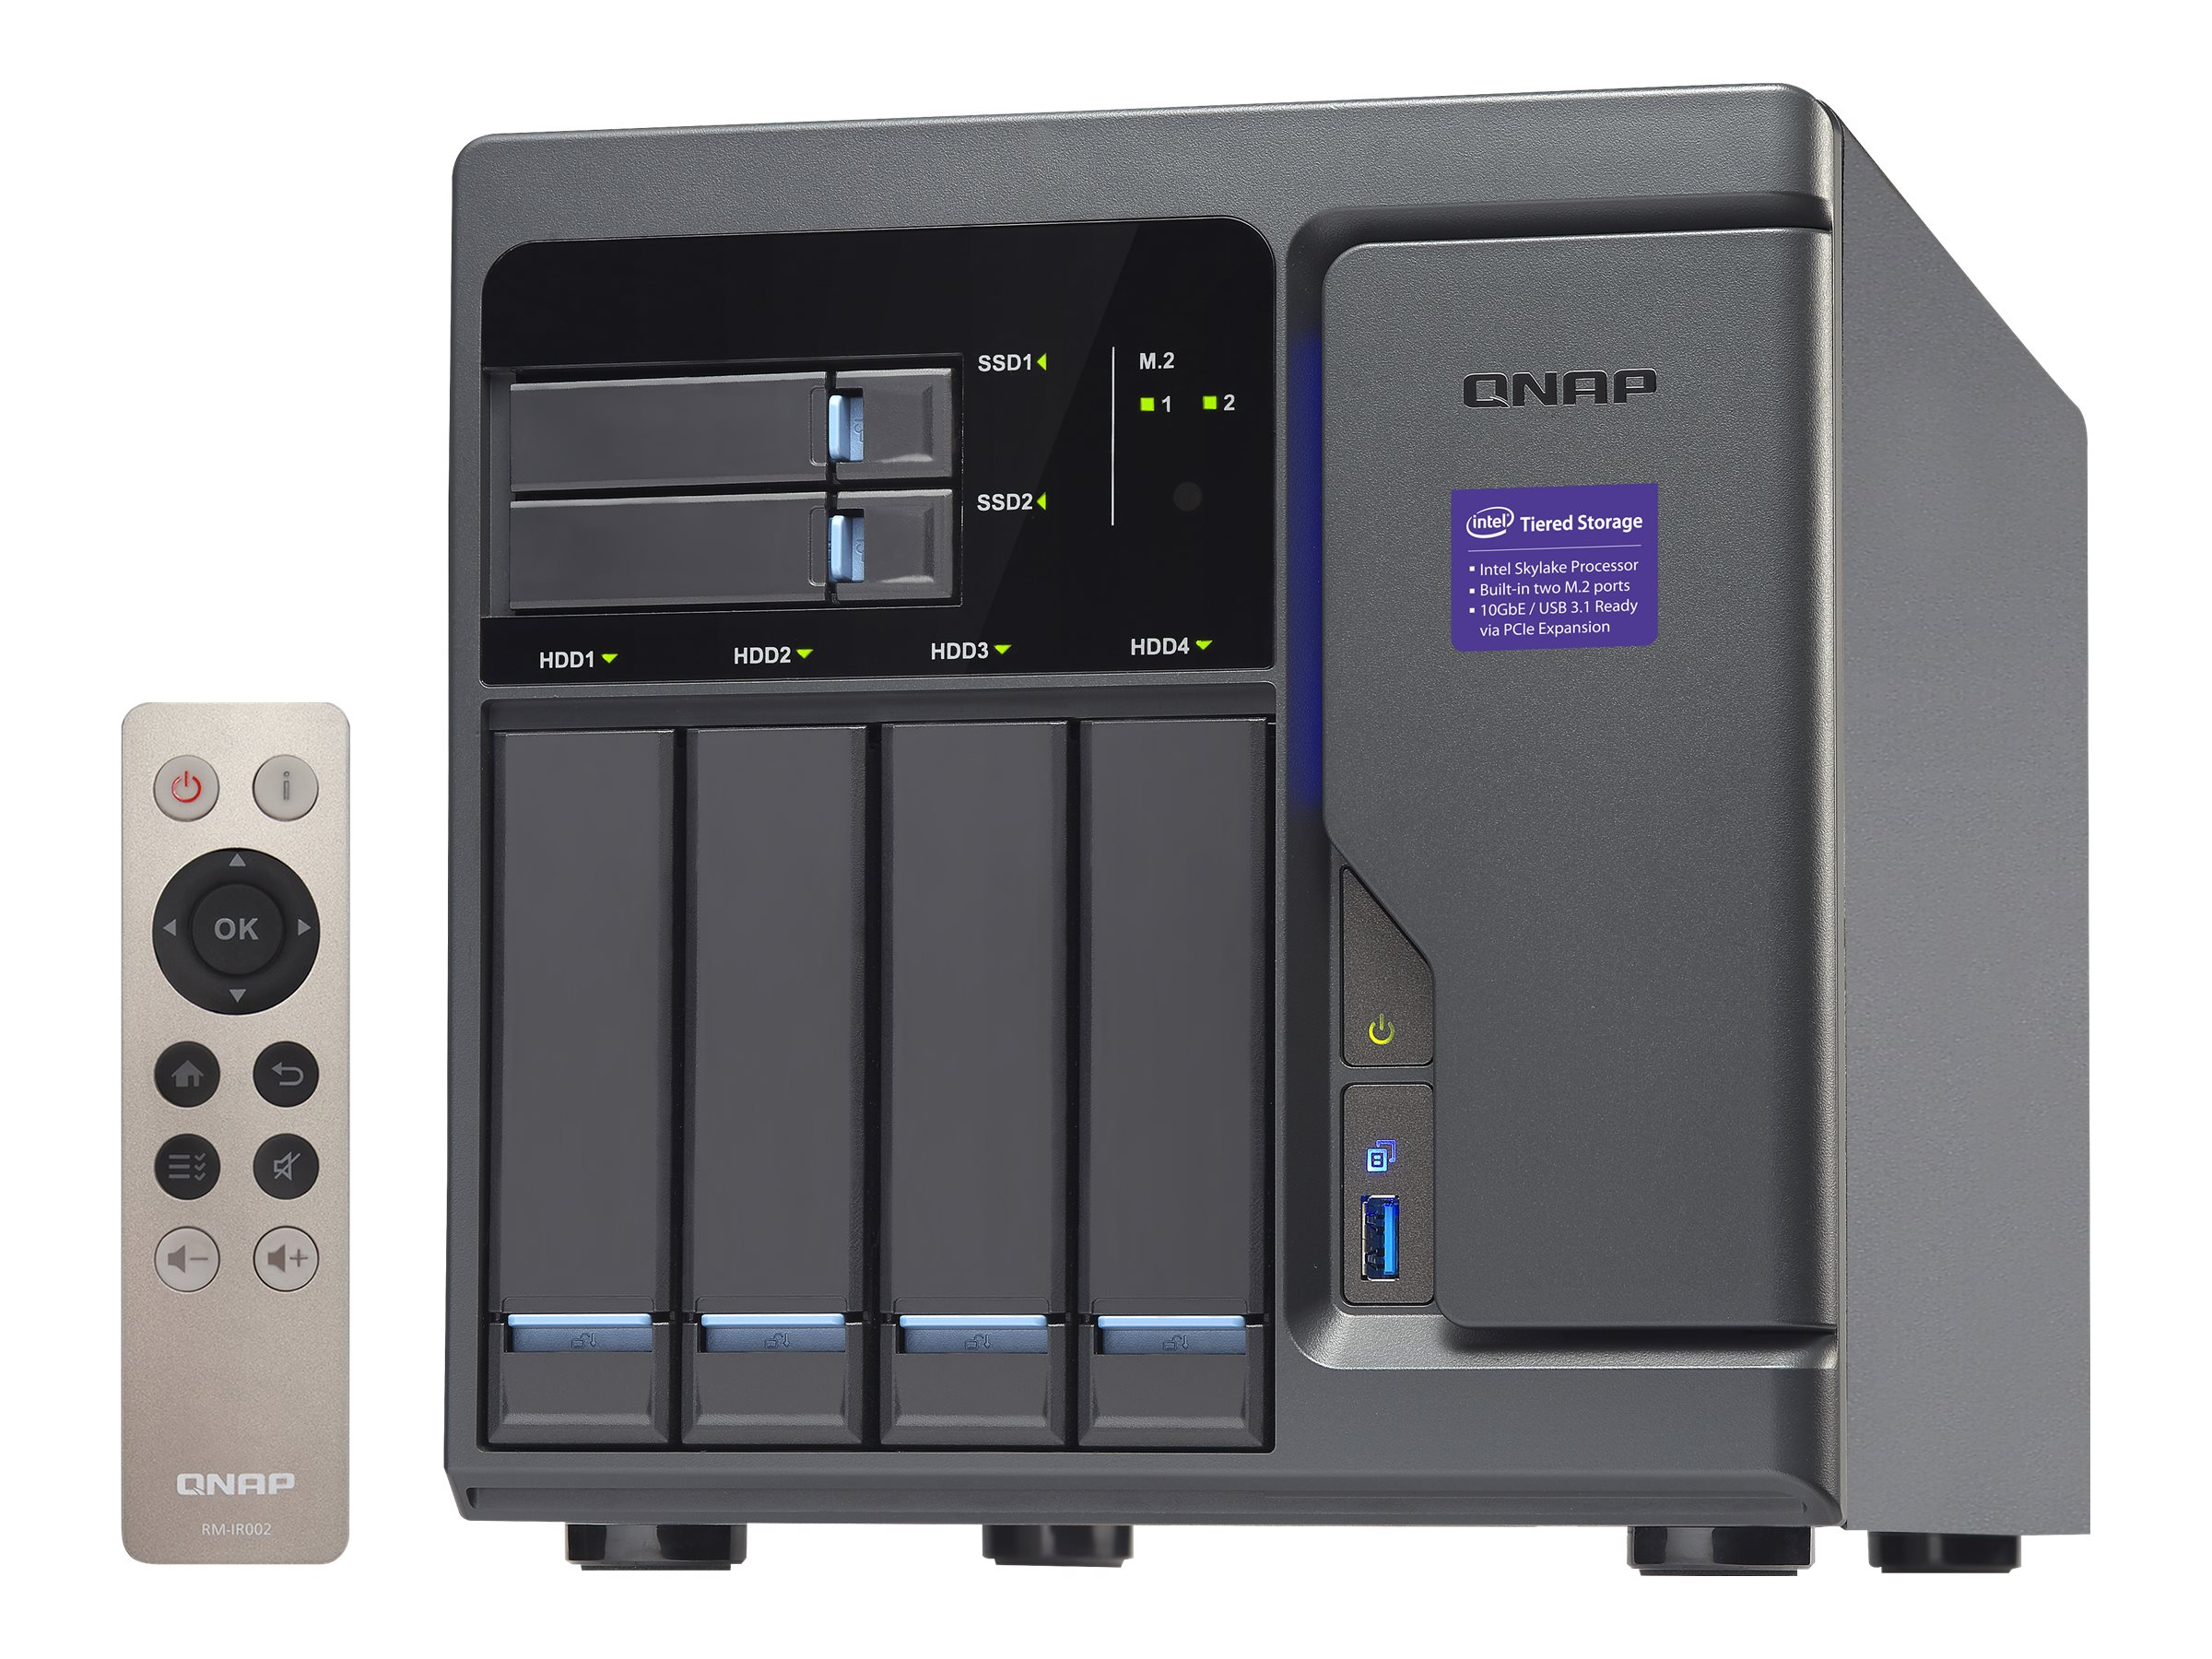 Qnap High Performance 6-Bay 4+2 Thunderbolt 2 DAS NAS iSCSI IP-SAN, TVS-682T-I3-8G-US